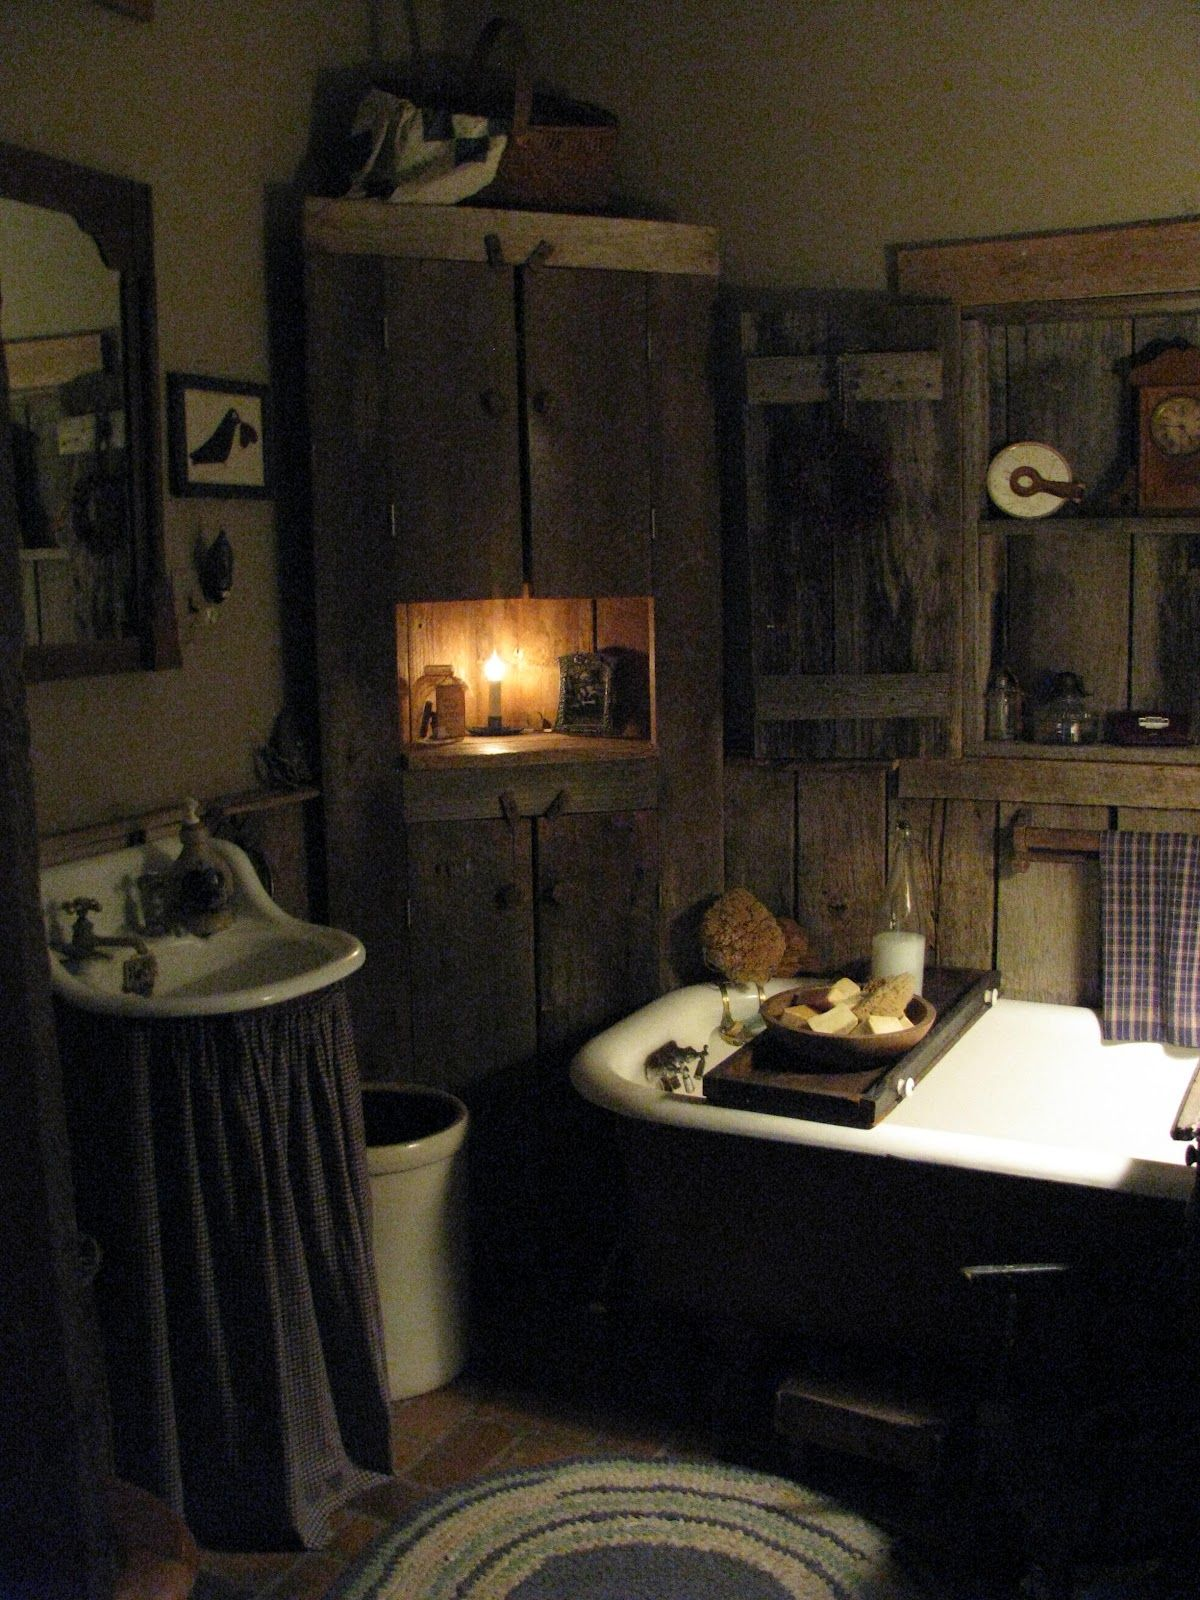 Primitive Bathroom This Decor Would Be So Cute On A Much